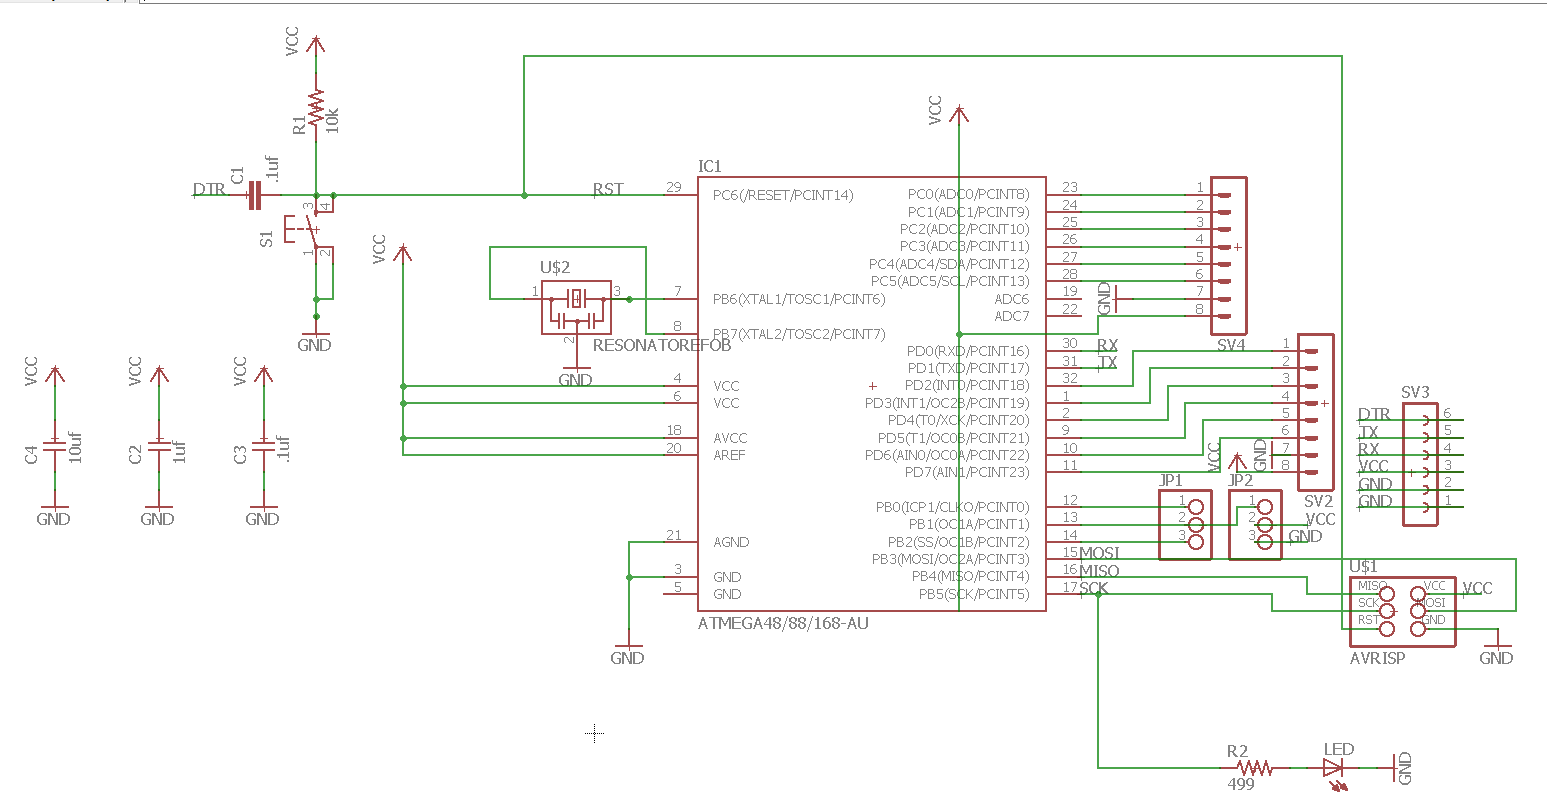 Final Project Arduino And Ds3231 Real Time Clock Circuit Schematics Created Pcb For Driving Servo Motor By Taking Input From Ds 3231 Rtc After Lot Of Research Analysis Online I Didnt Find Any